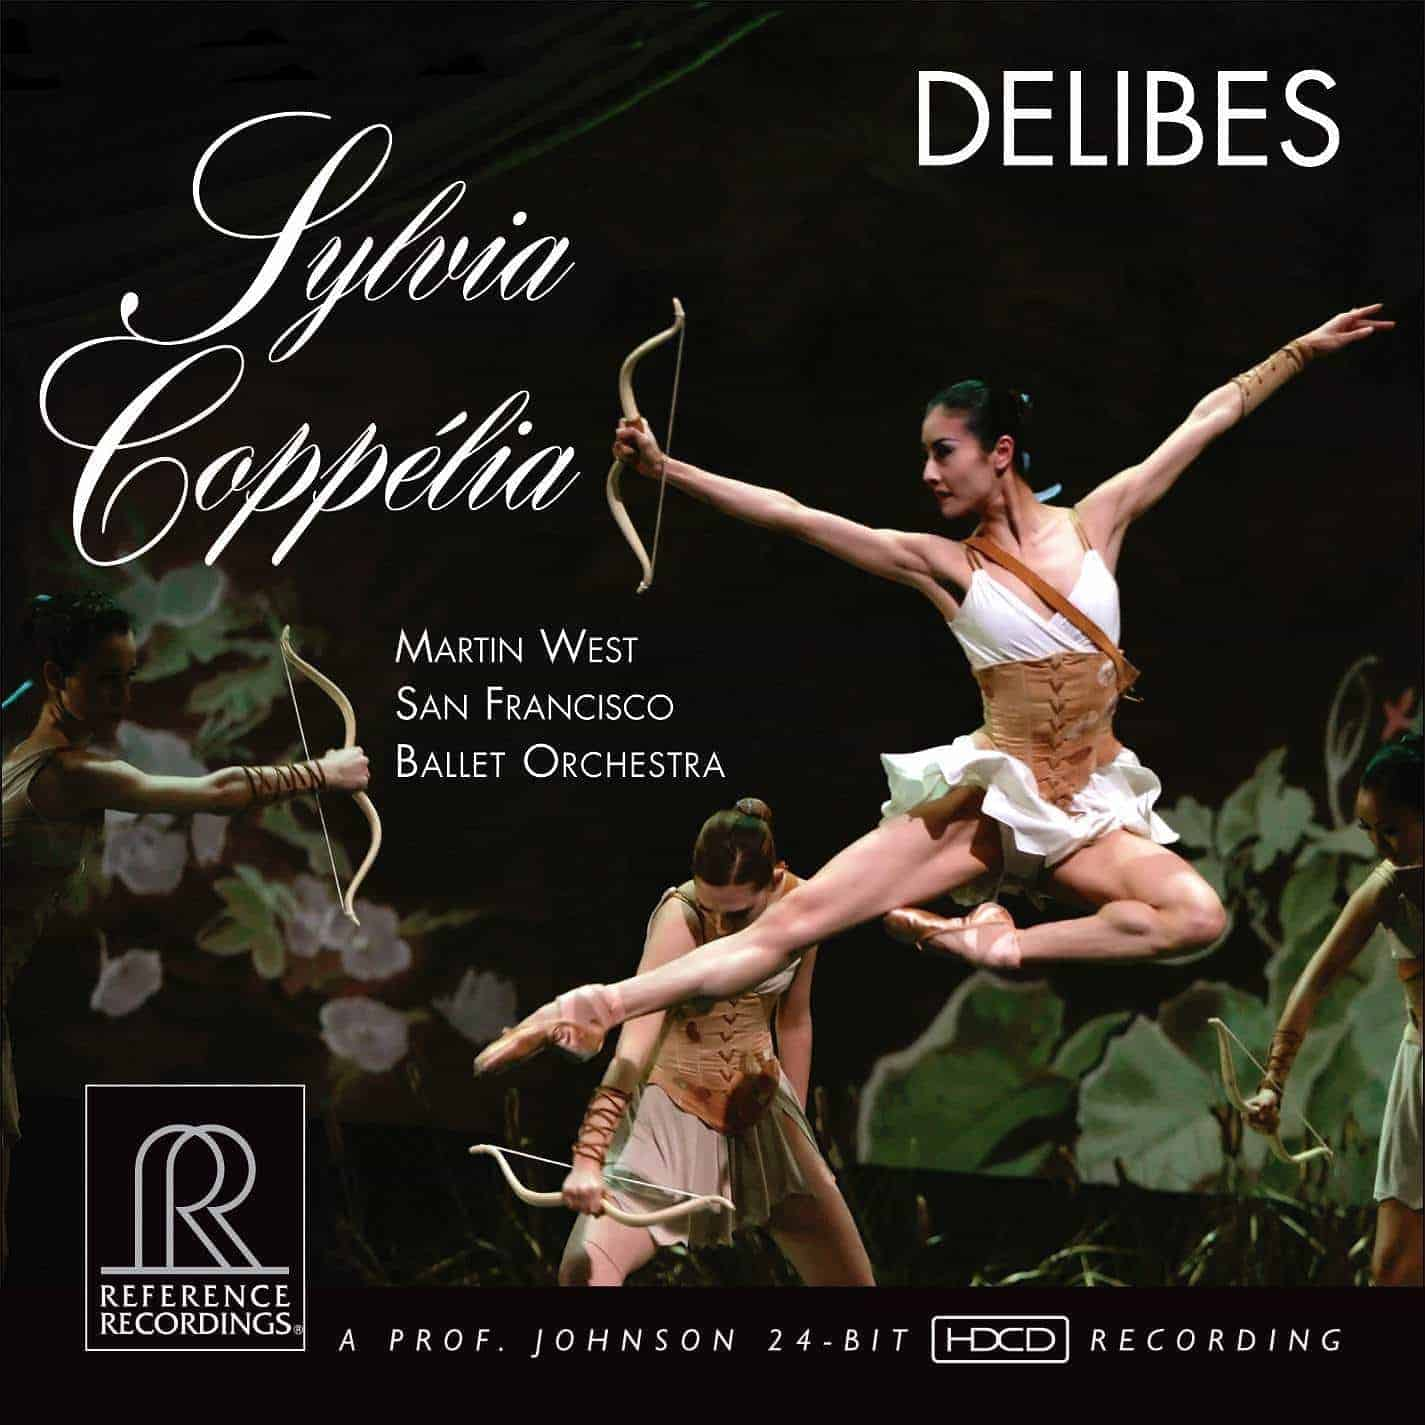 Delibes: Sylvia and Coppelia | San Francisco Ballet Orchestra